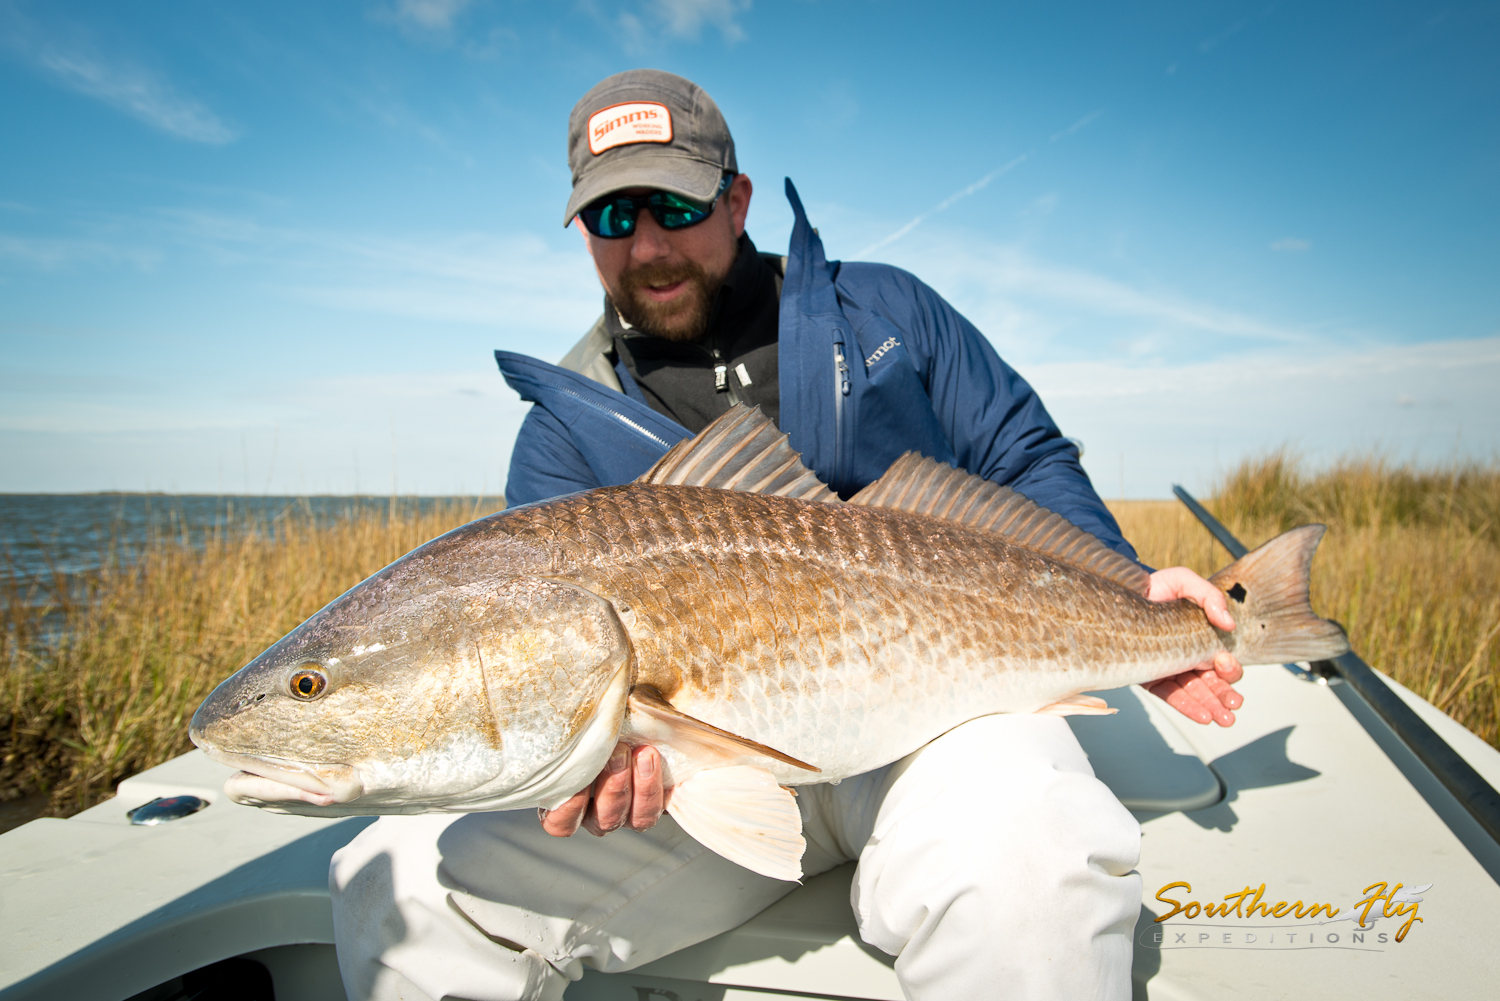 Fly Fishing New Orleans with Southern Fly Expeditions of New Orleans LA